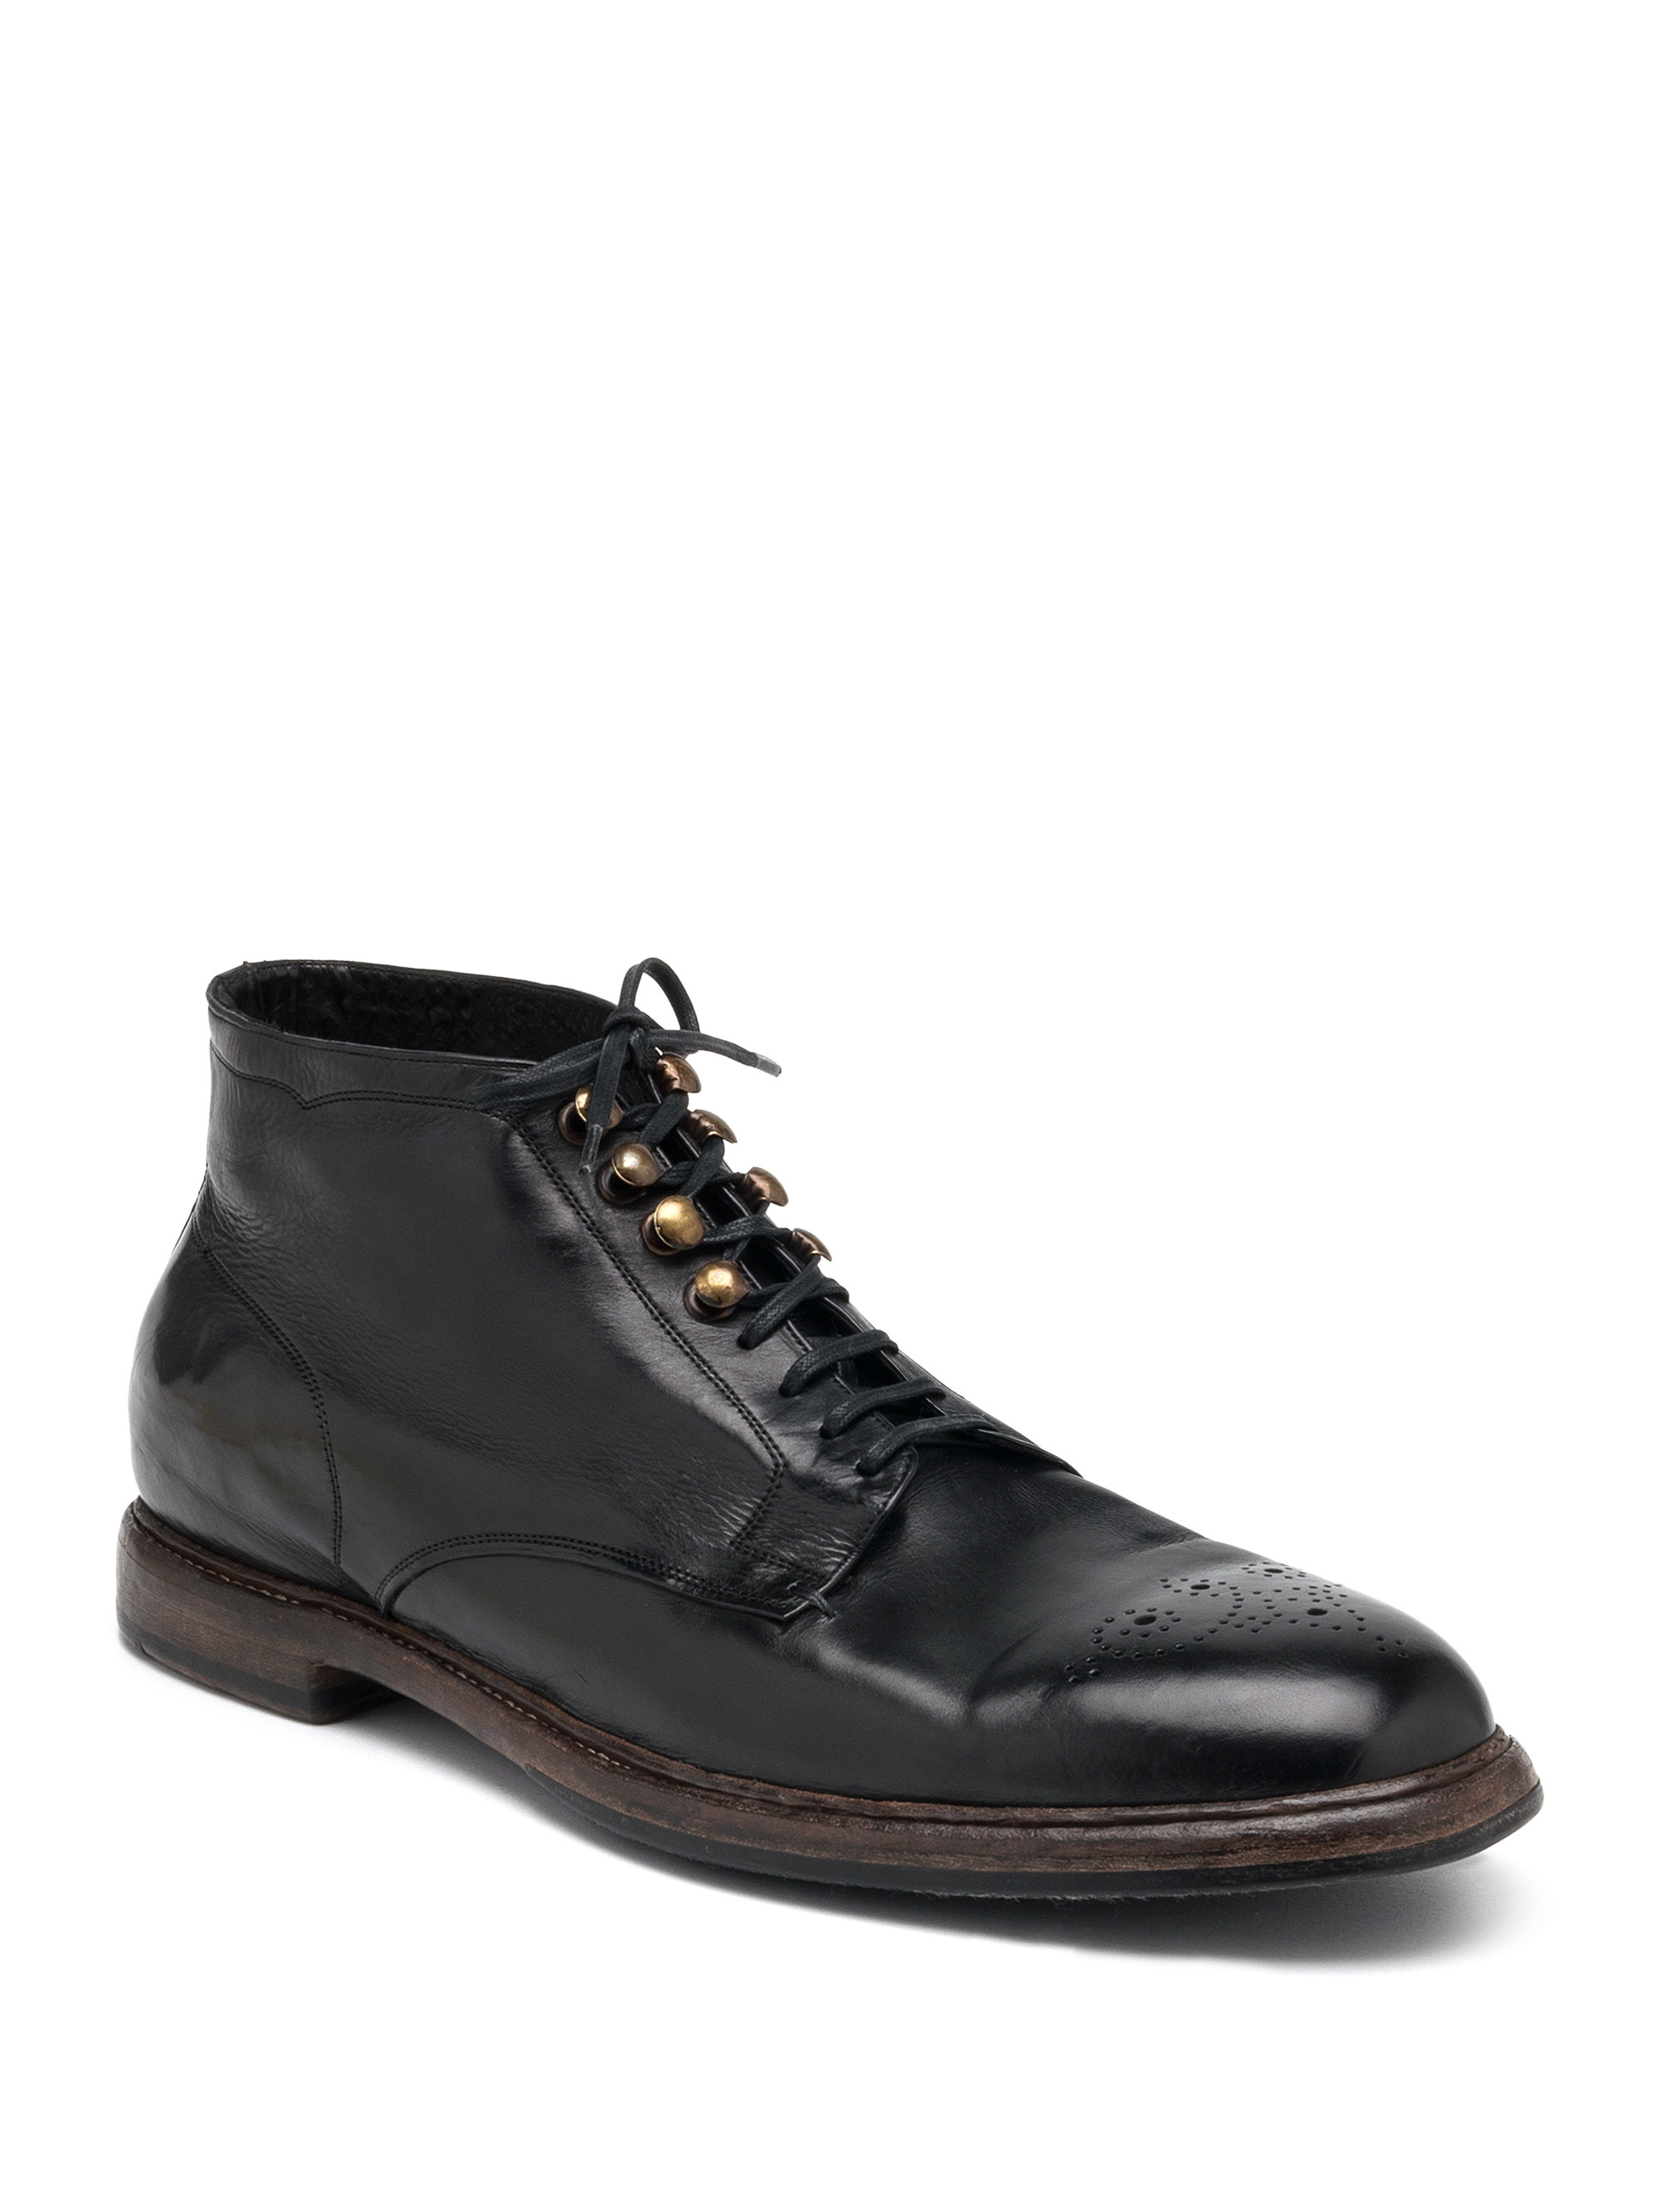 dolce gabbana leather chukka boots in black for lyst